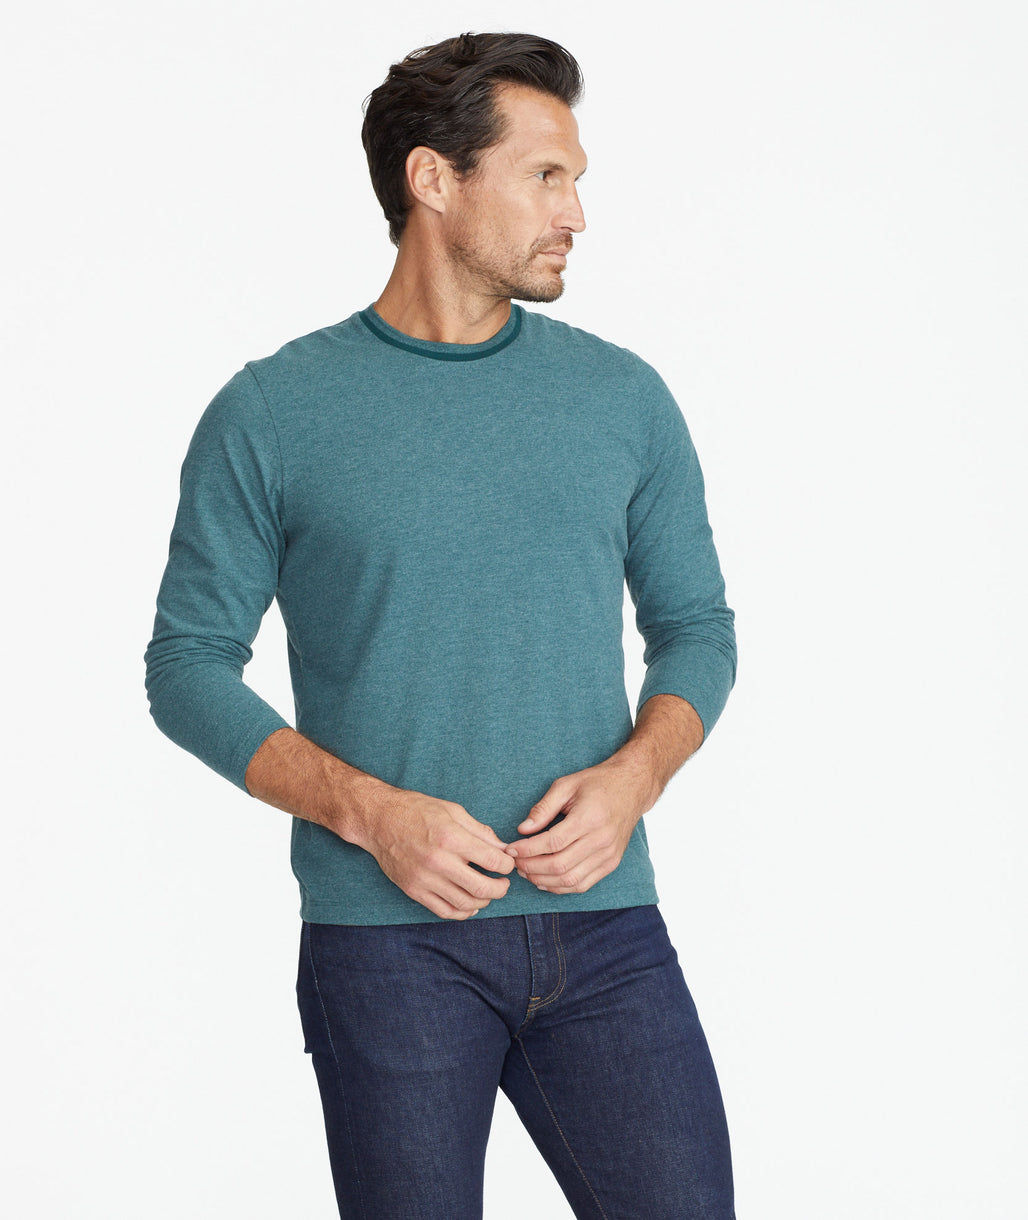 Model wearing a Green Ultrasoft Long-Sleeve Tee